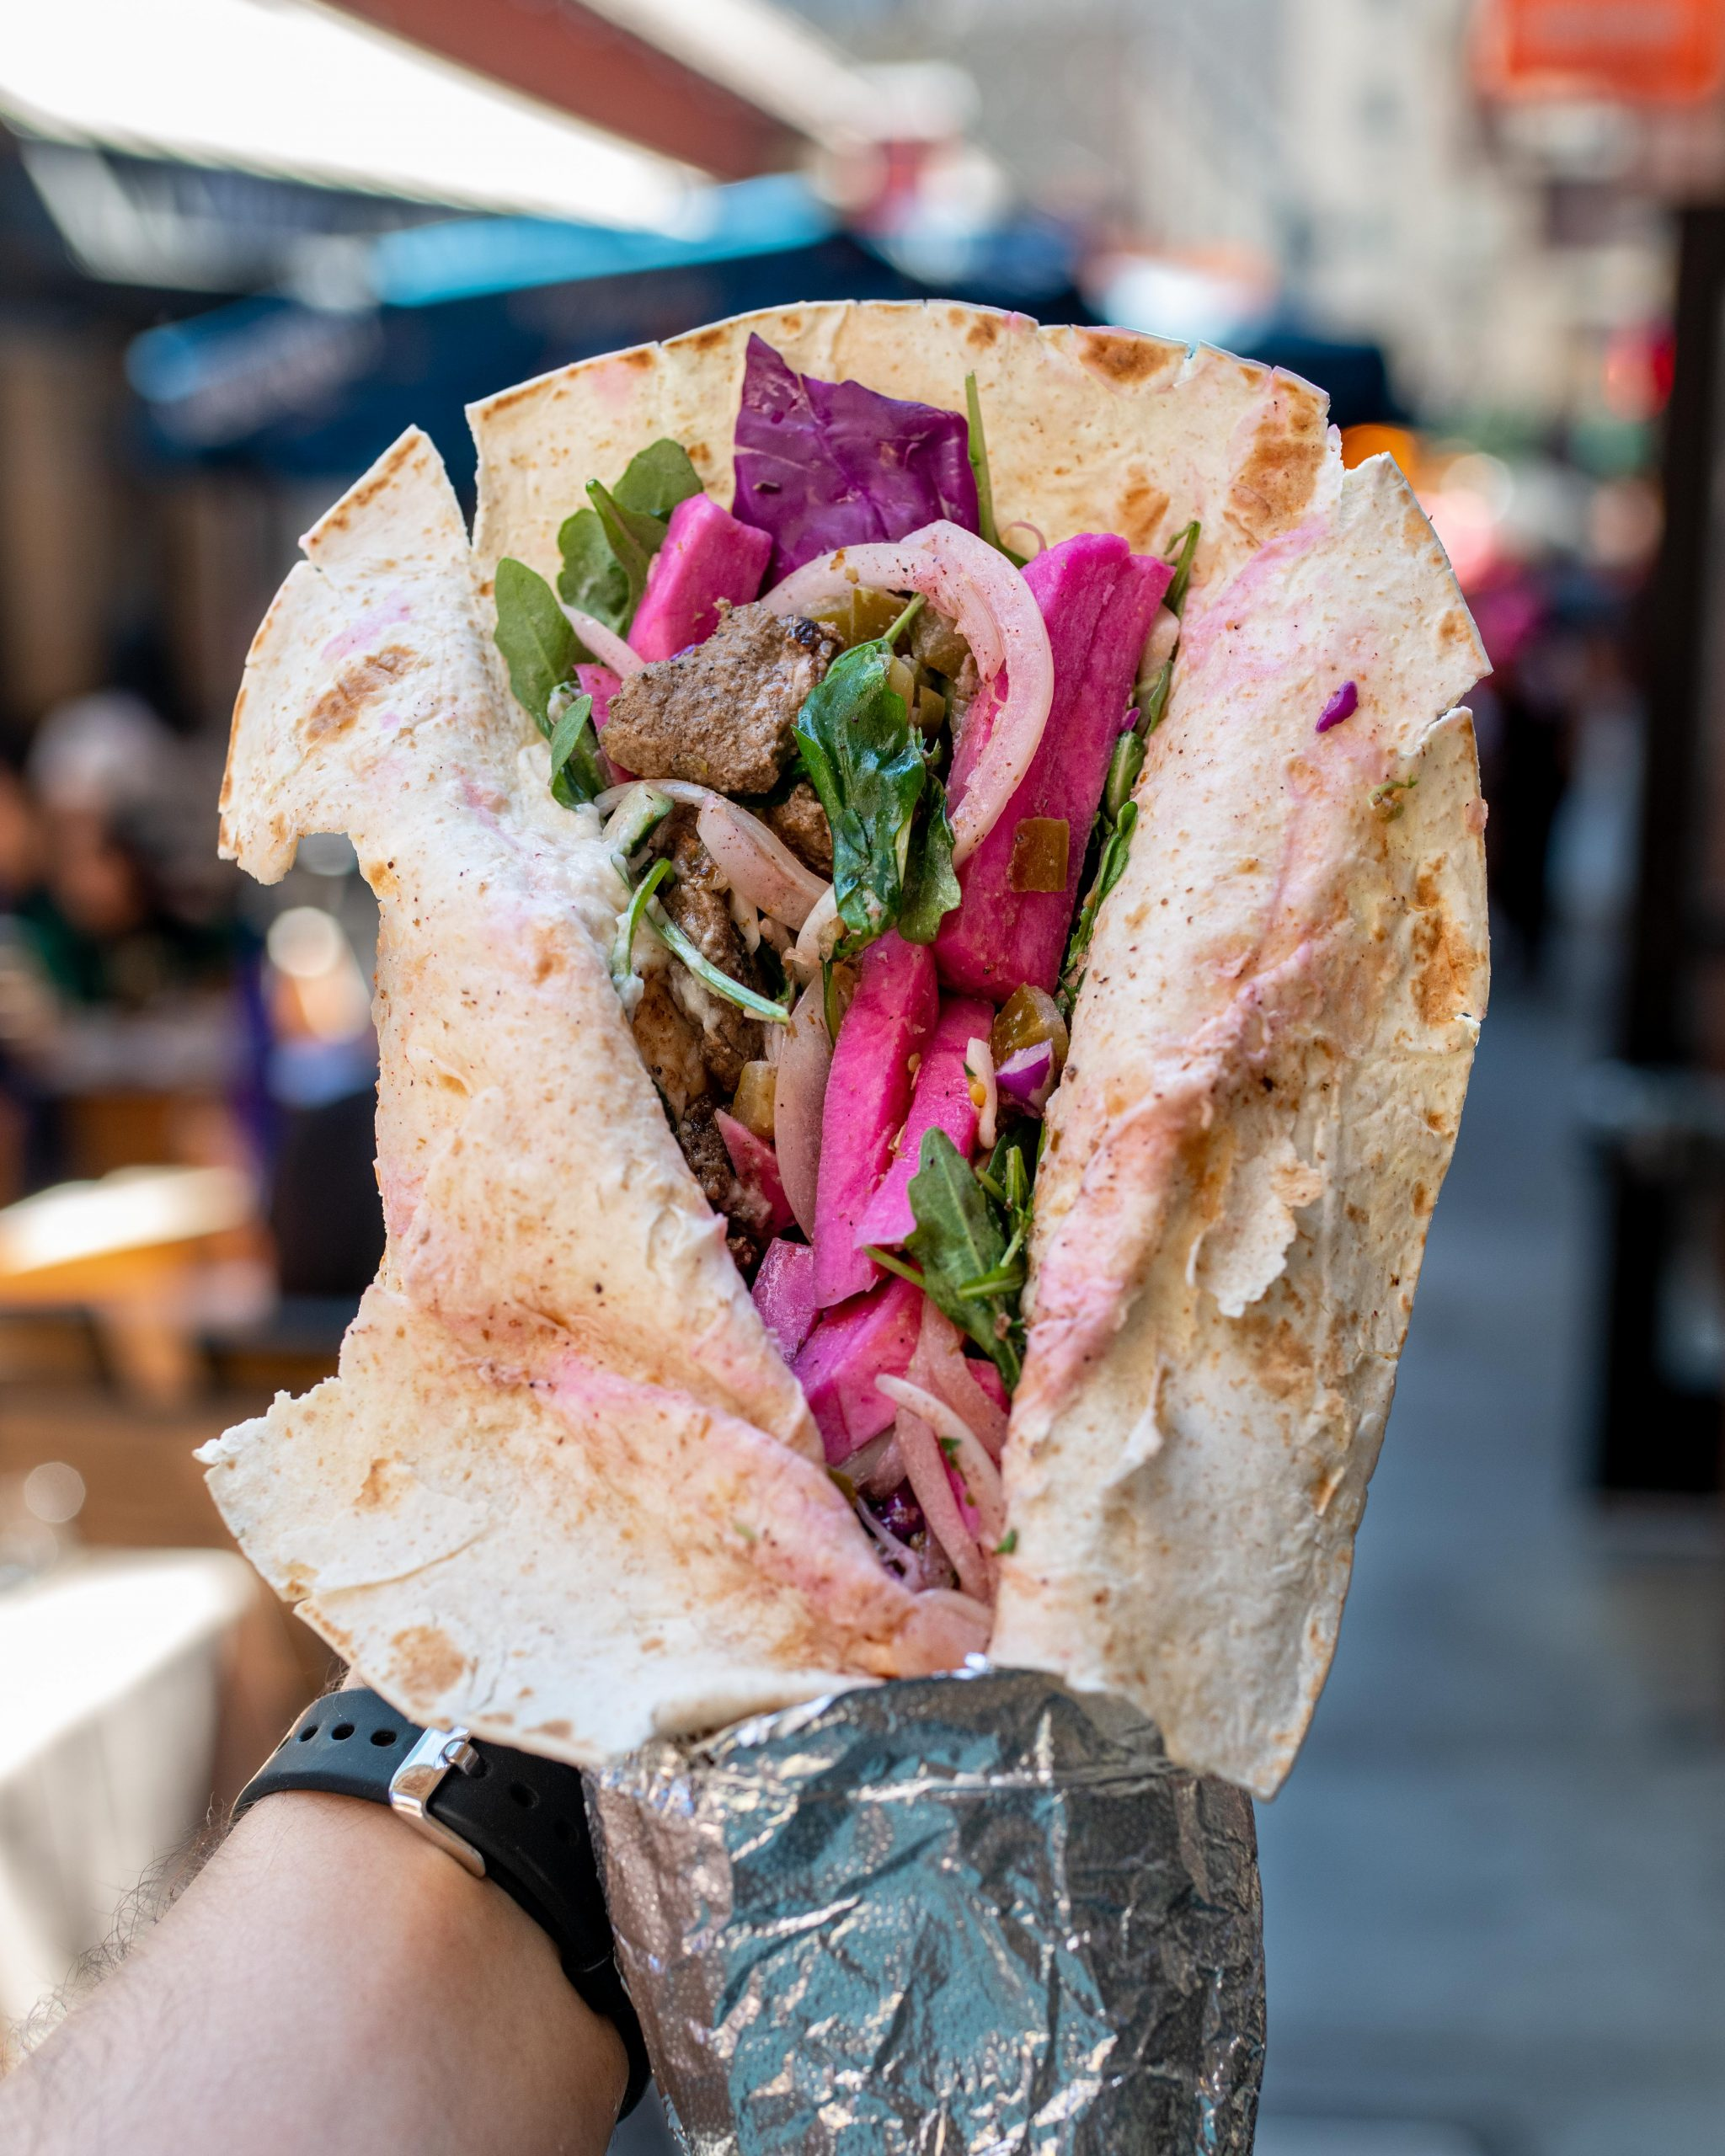 Sajj Mediterranean Wrap Opened up